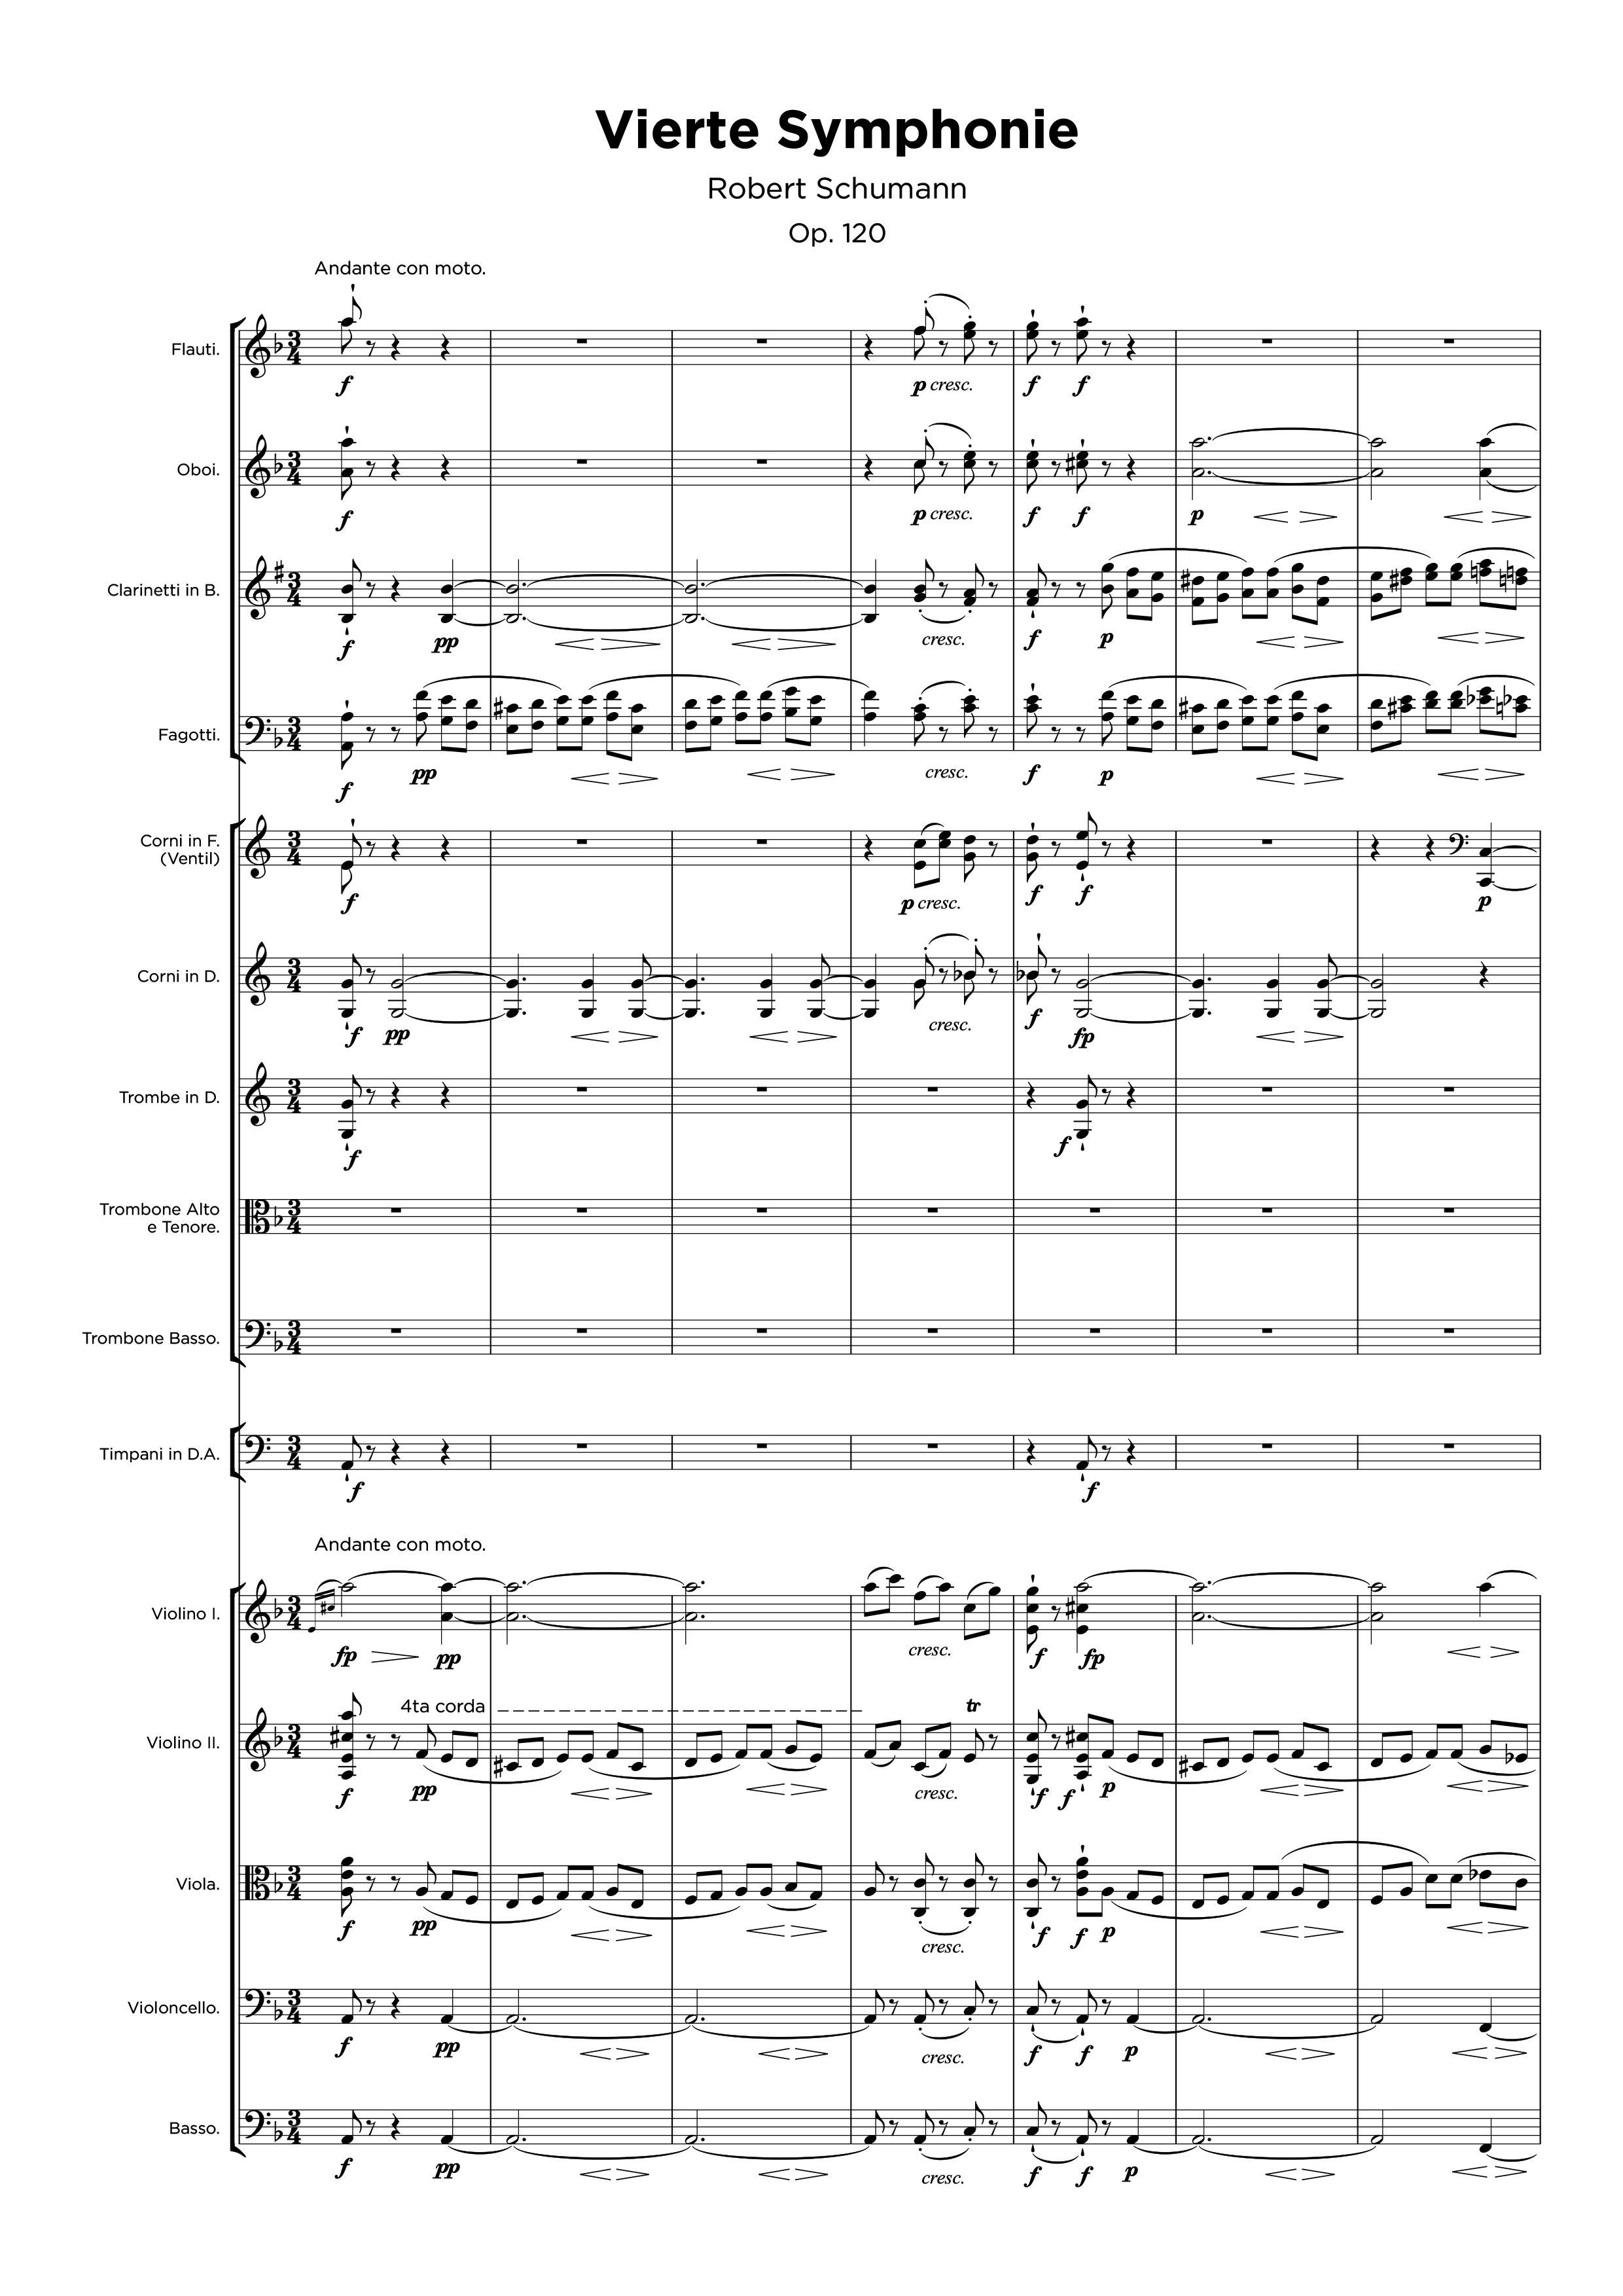 Vierte Symphonie - Copying / Digitizing Services sheet music